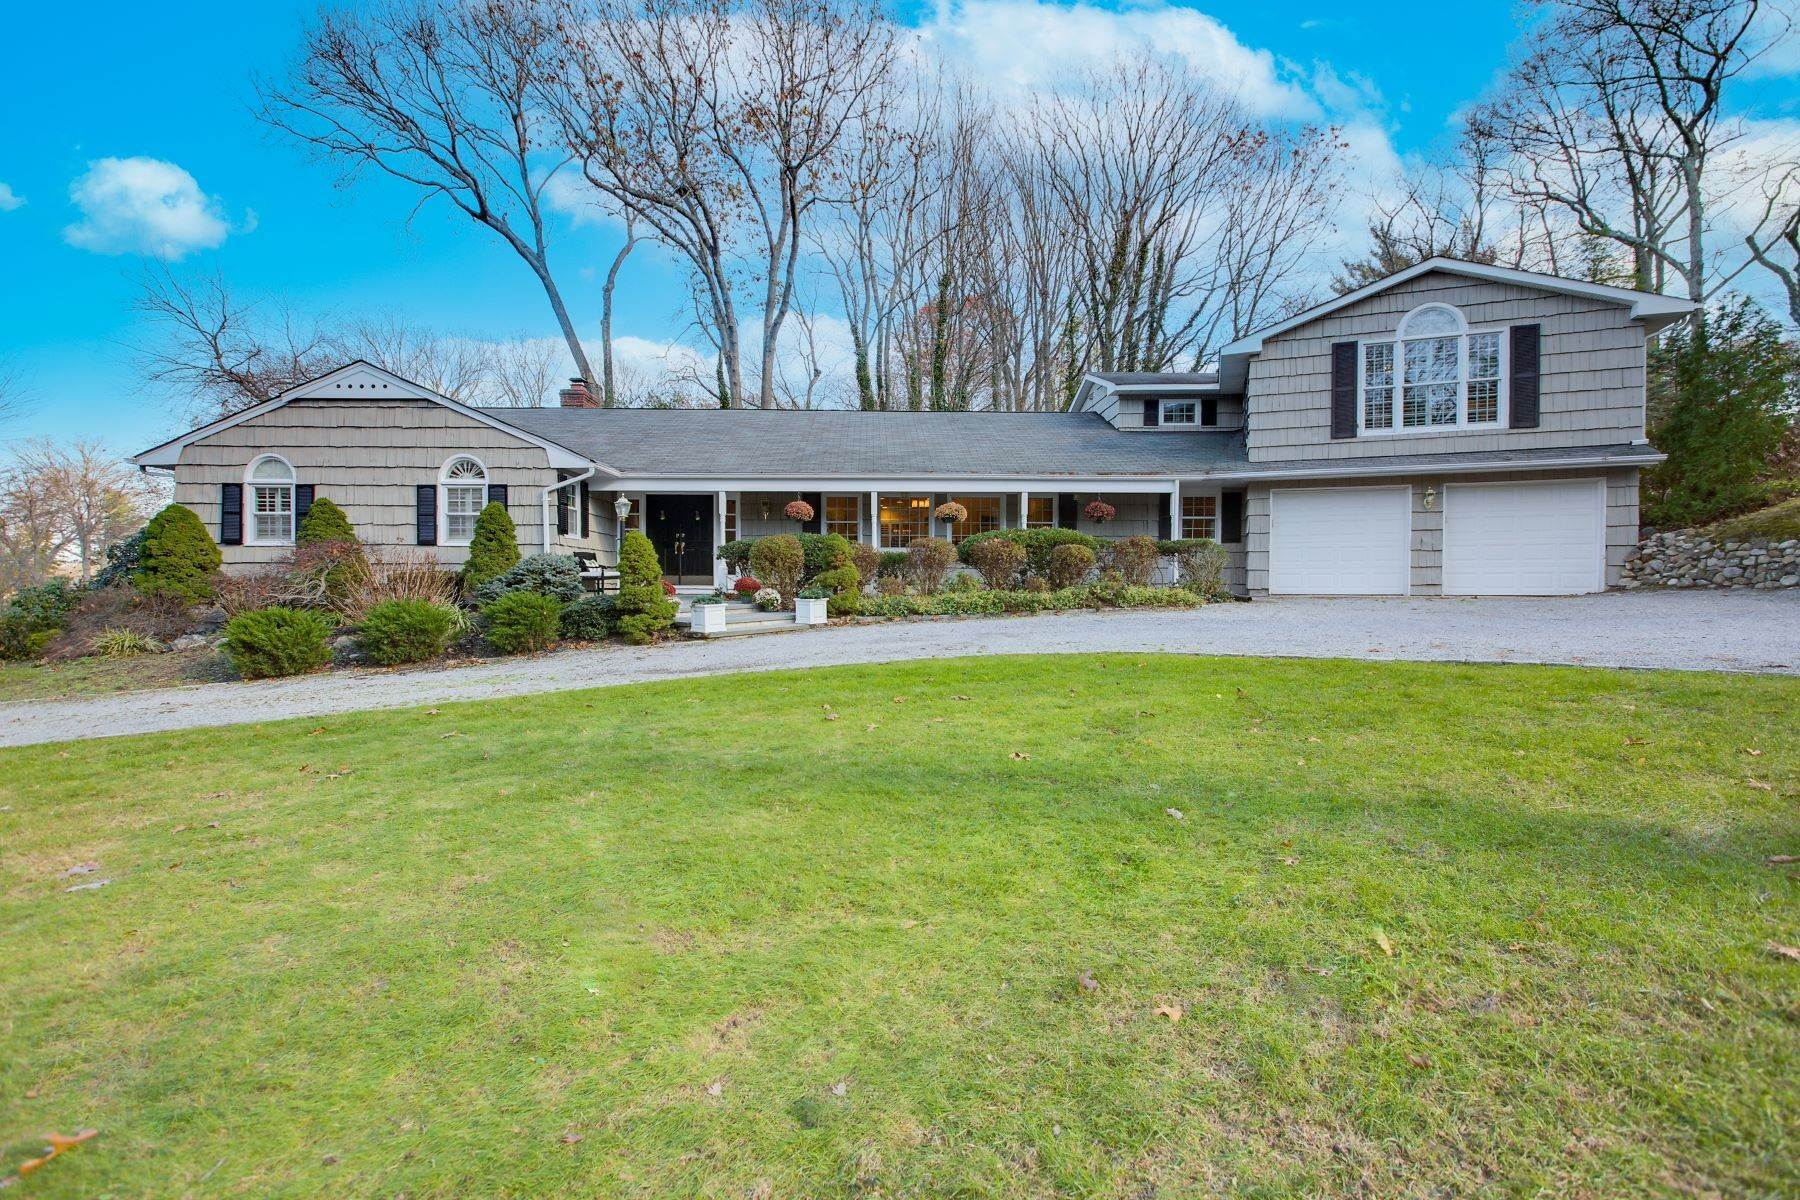 Single Family Homes for Sale at 2 Mill River Rd, Setauket, Ny, 11733 2 Mill River Rd Setauket, New York 11733 United States